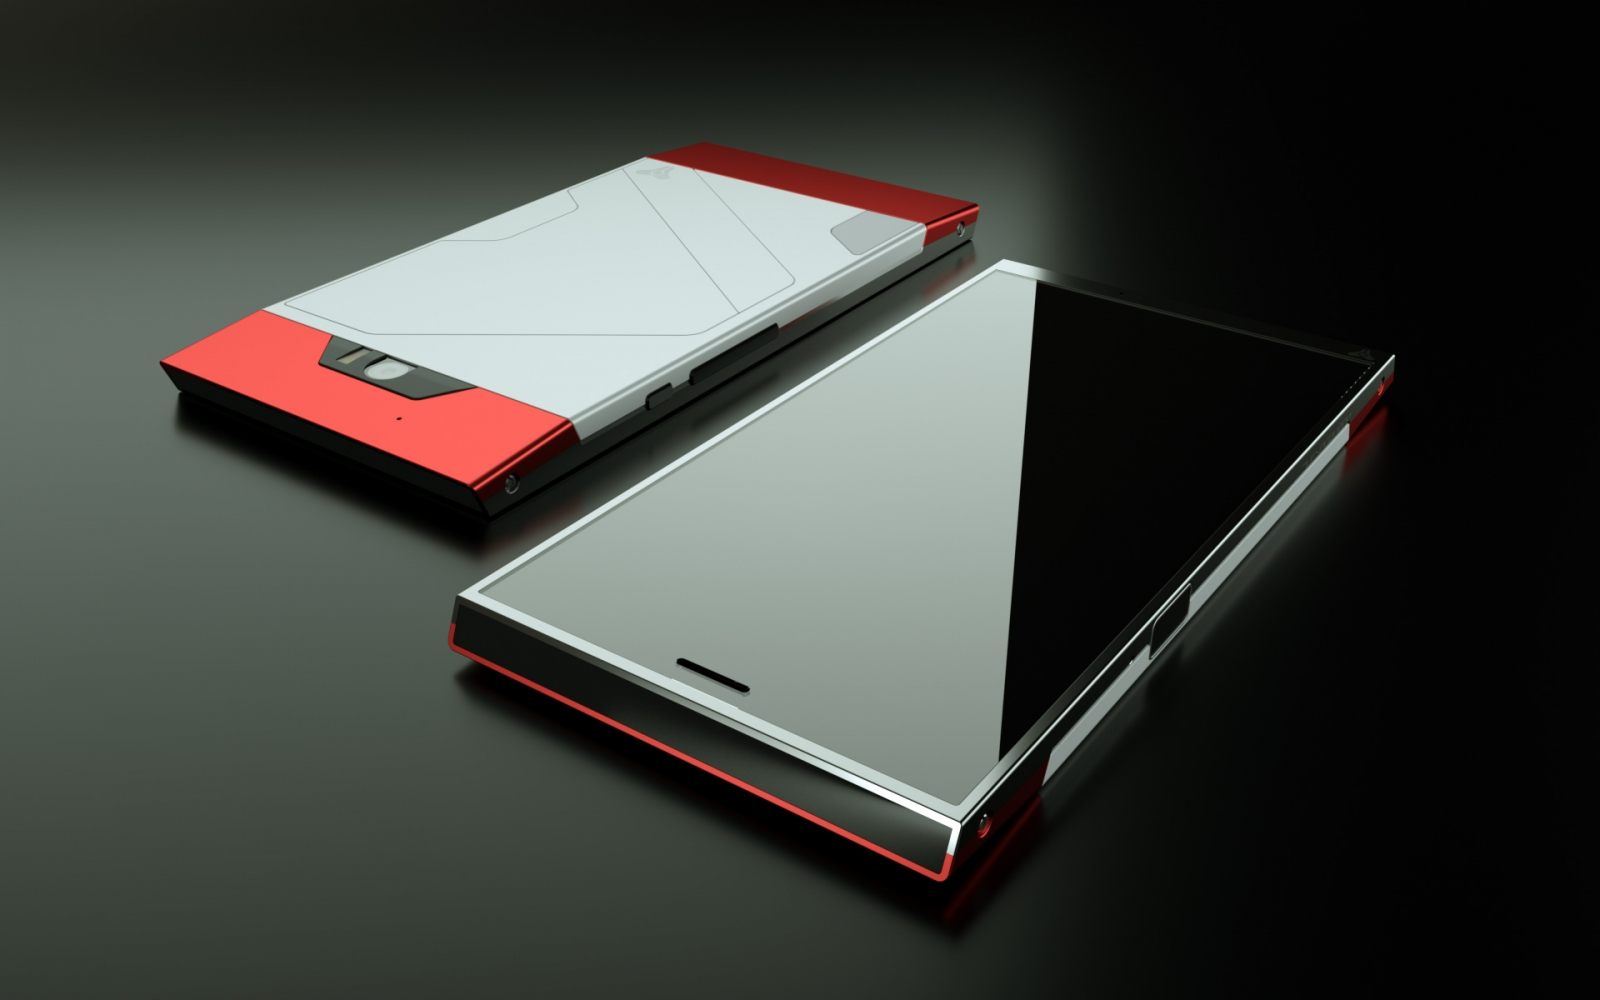 The Turing Phone super secure smartphone